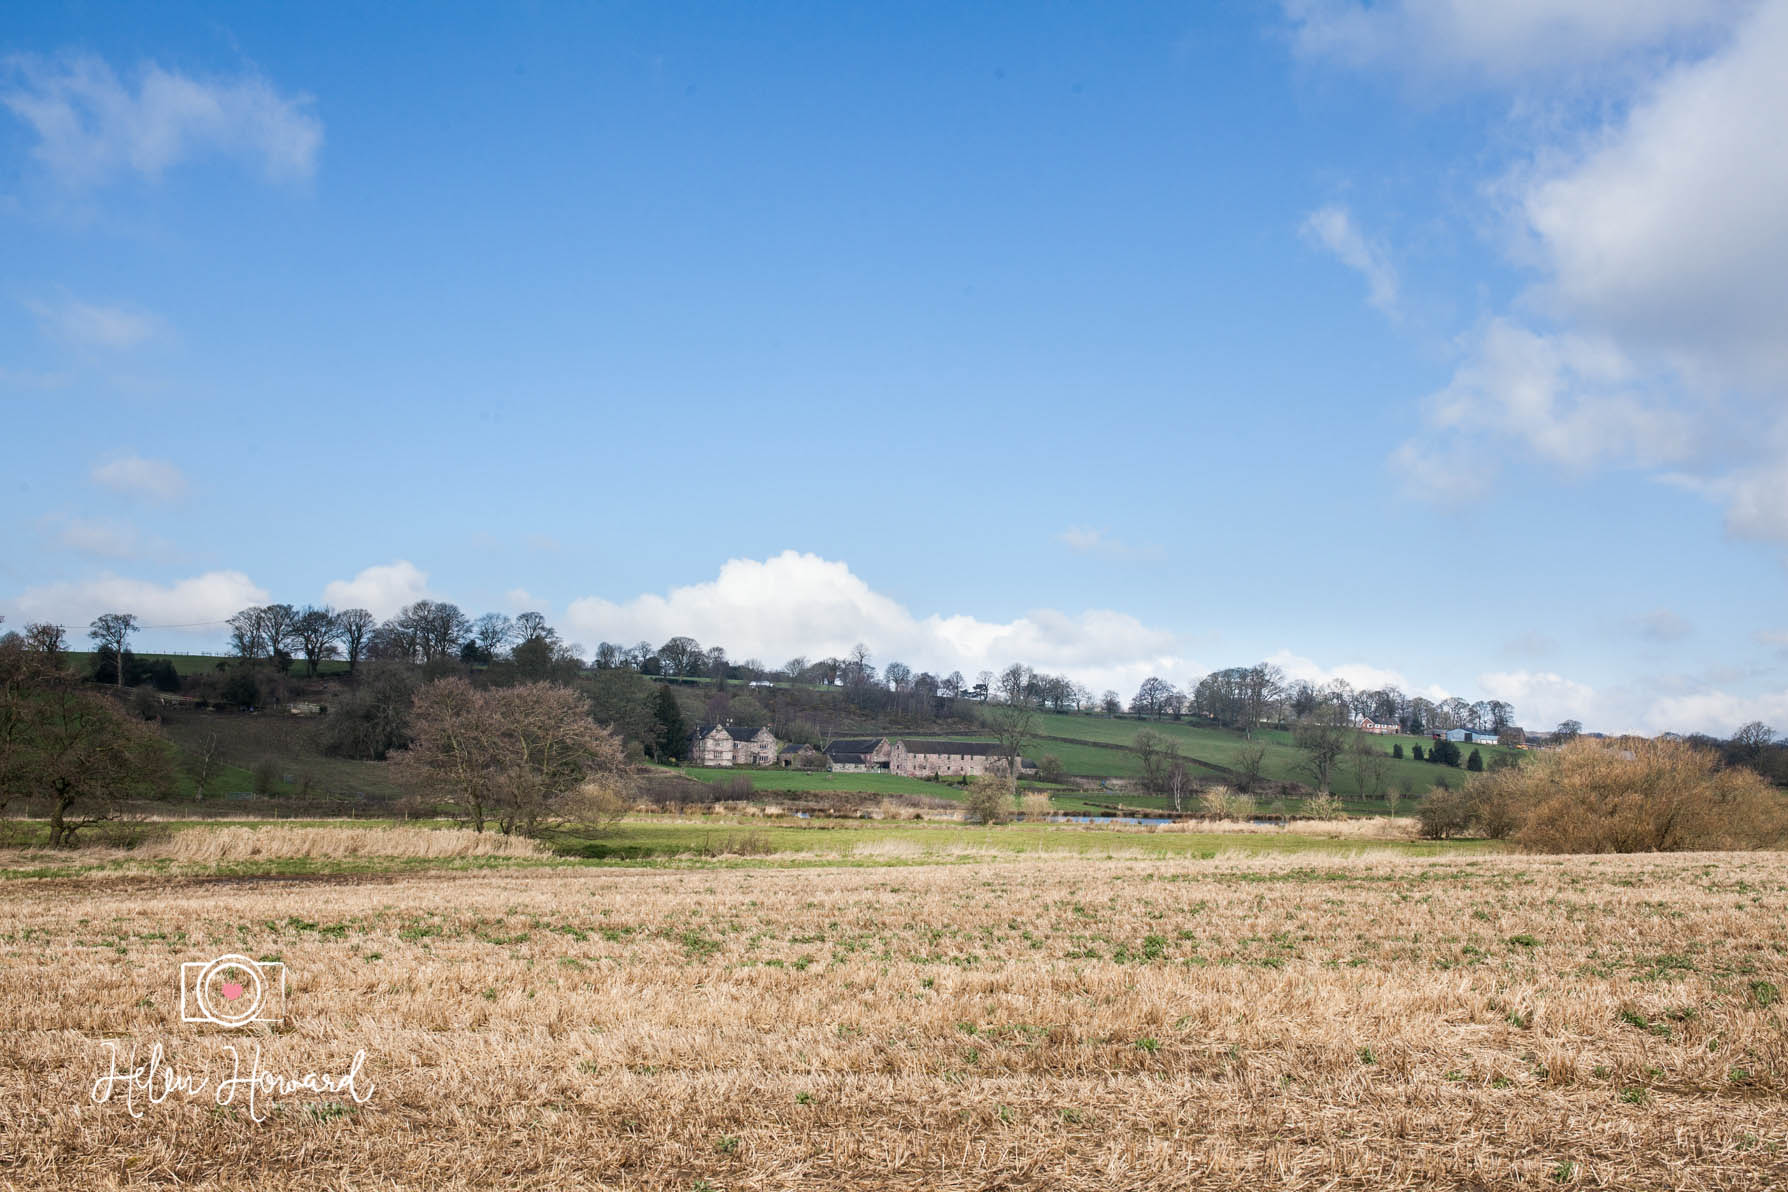 View across the fields to The Ashes No Corkage Country House Venue